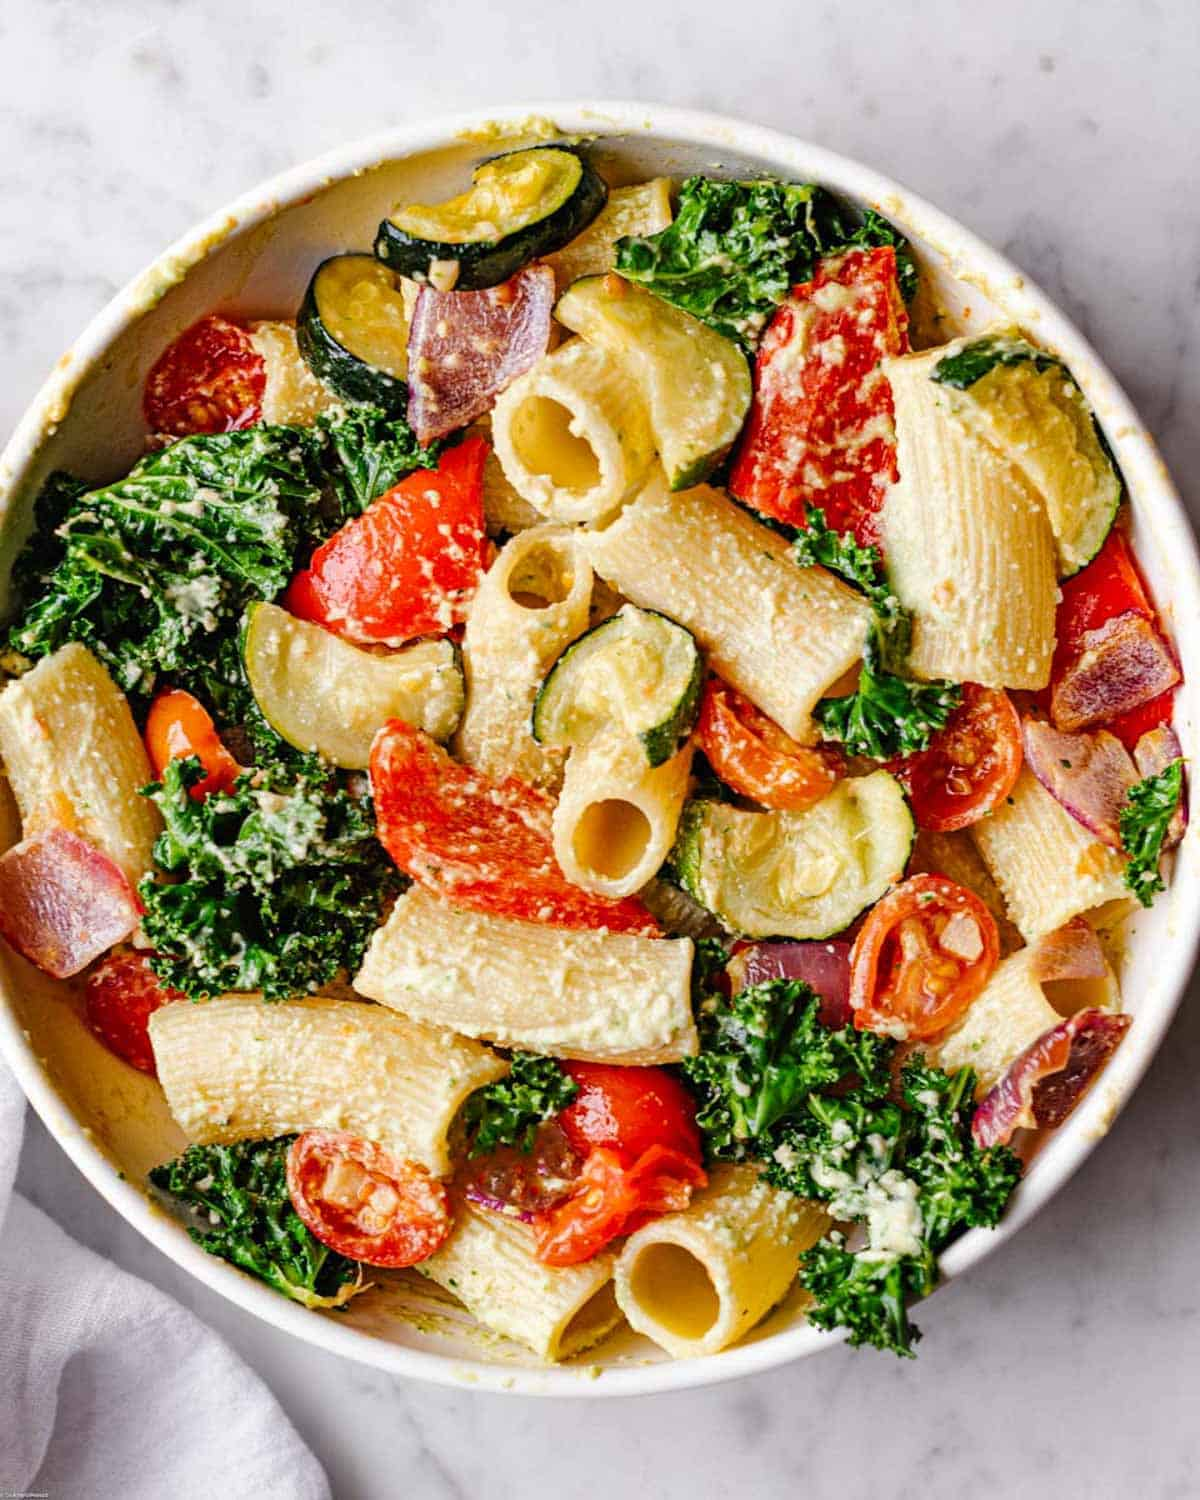 Rigatoni pasta with roasted curly kale, grape tomatoes, and red onion in a creamy light green cilantro dressing.